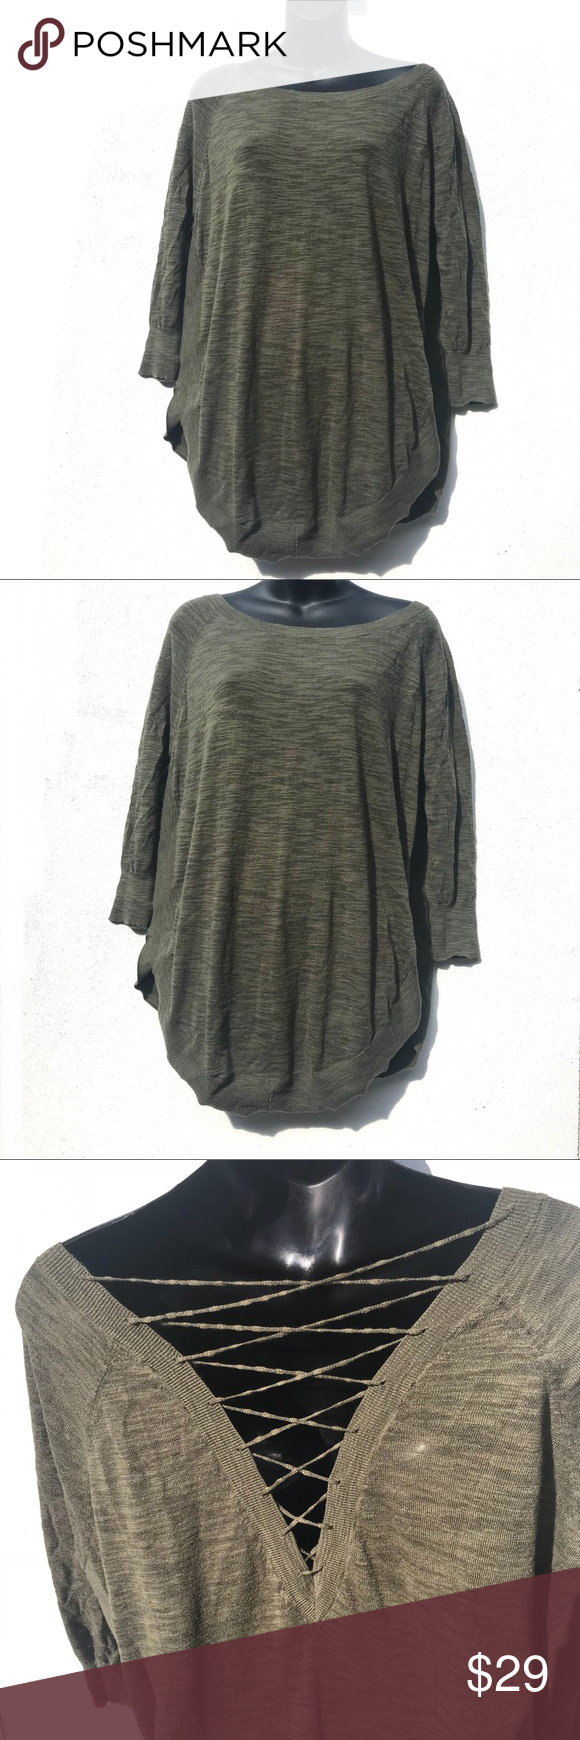 c6fd3b18fb EXPRESS Lace Up Back Circle Hem Sweater Olive green slouchy sweater with  raglan sleeves